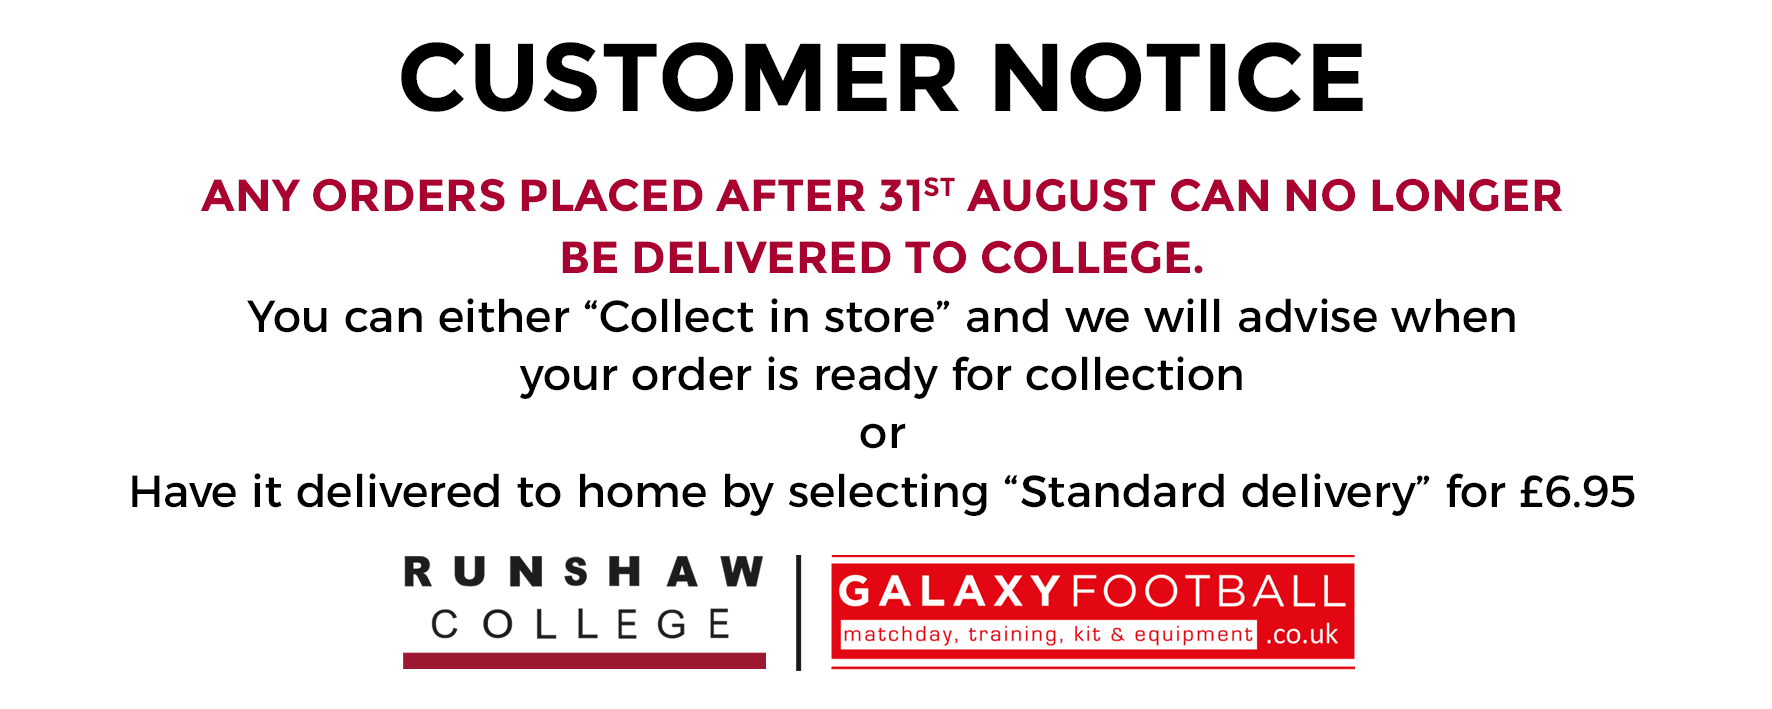 runshaw-customer-notice-delivery-2017.png